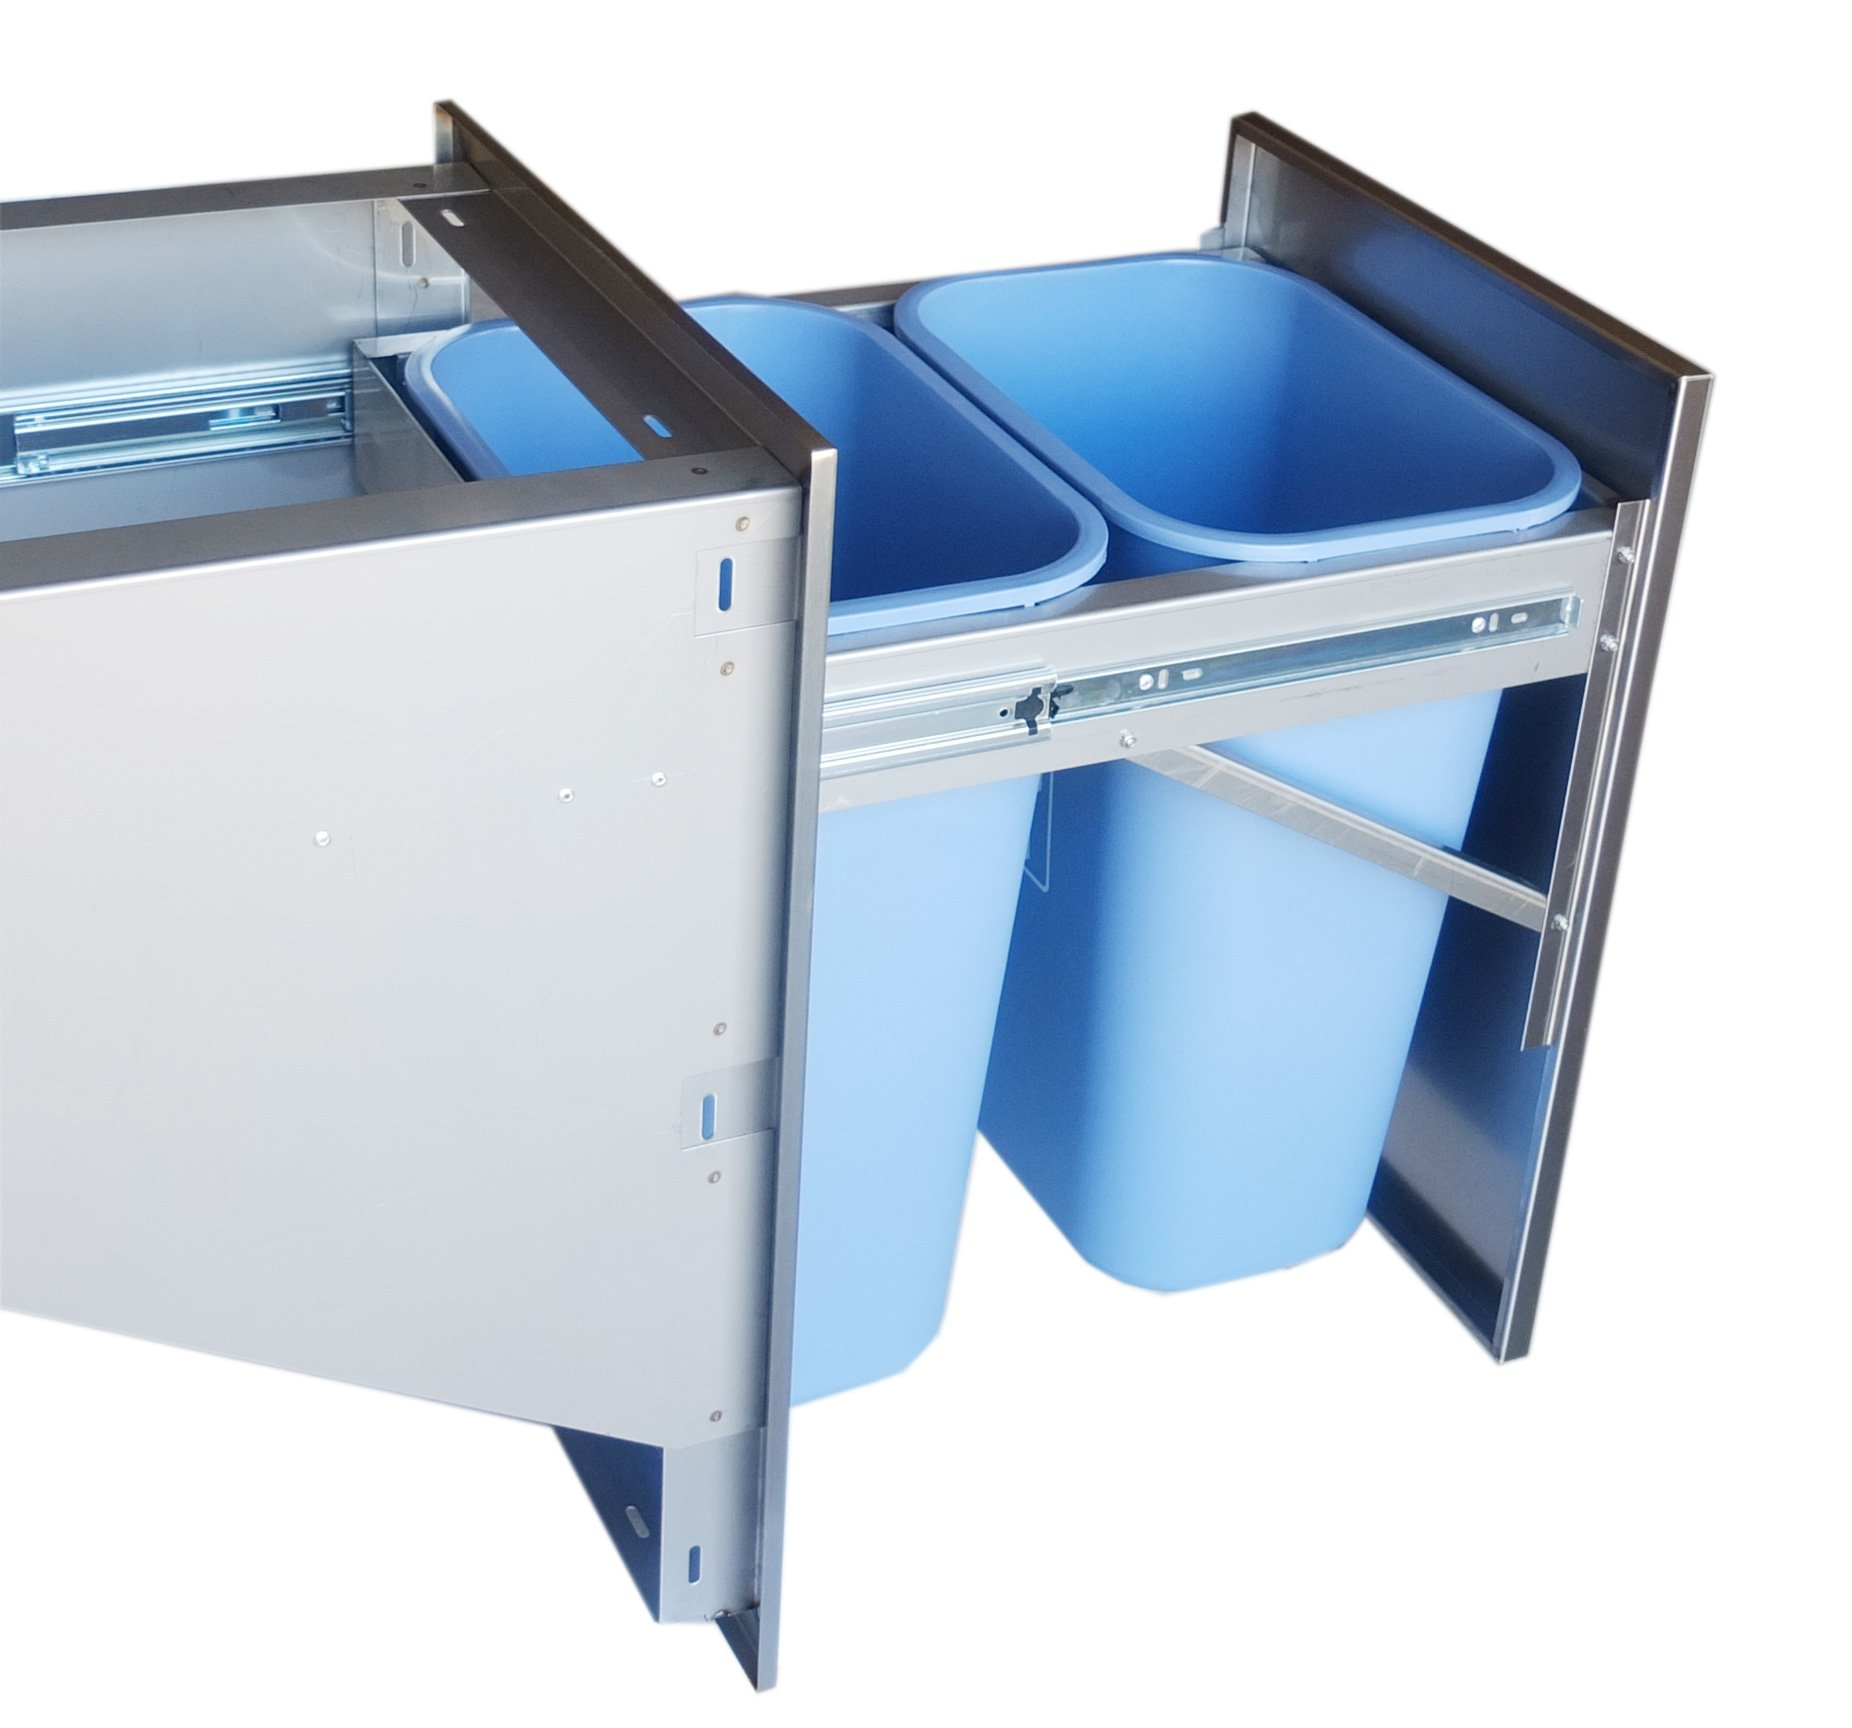 SUNSTONE BA-TRD1724 Beveled Frame Drawer with Two Trash Bins, 17 by 24'' by SUNSTONE (Image #4)